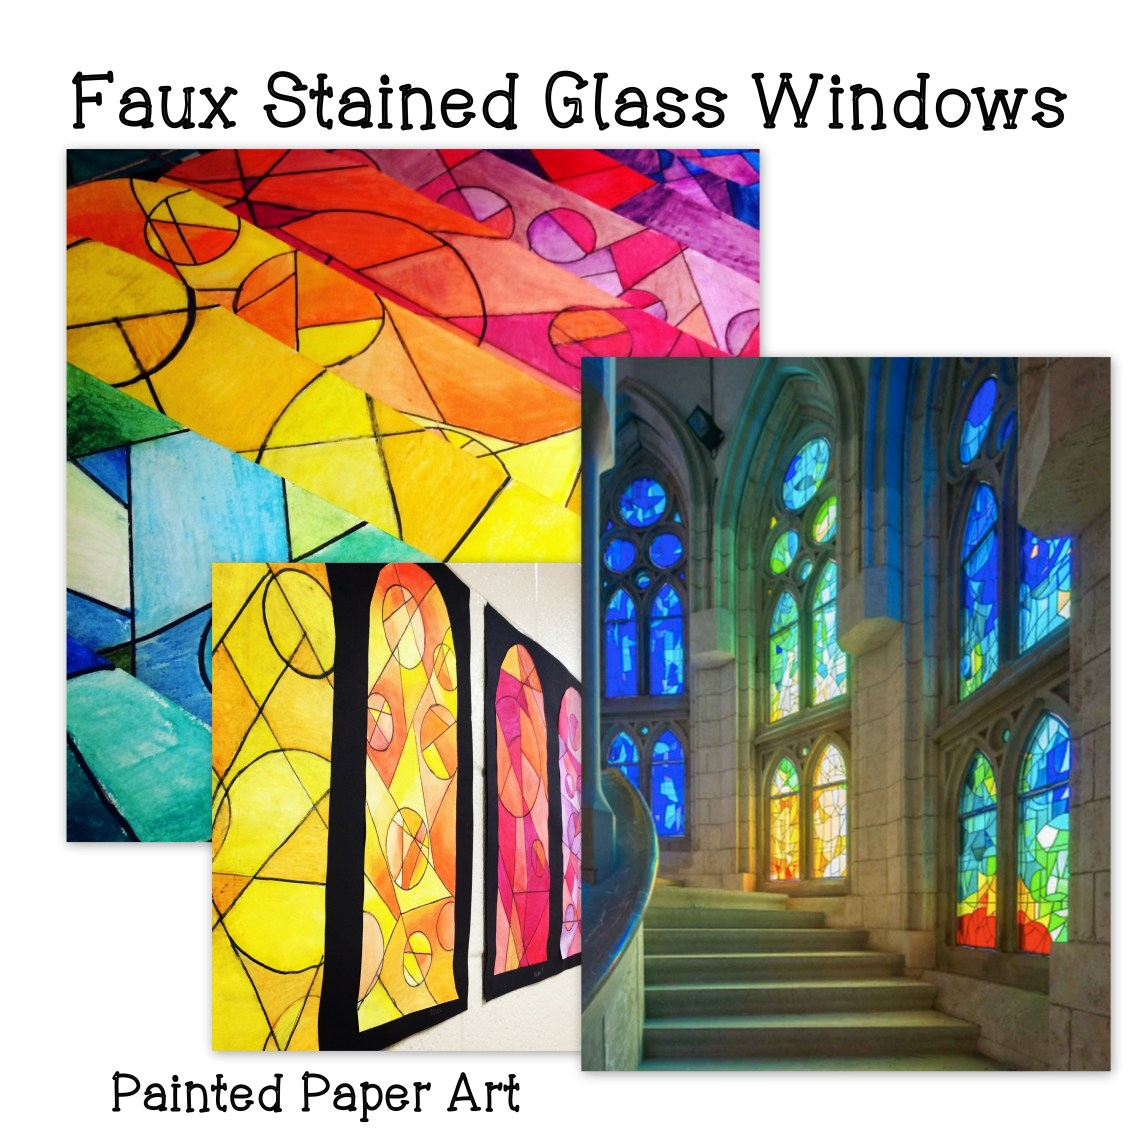 Faux Stained Glass Windows Painted Paper Art